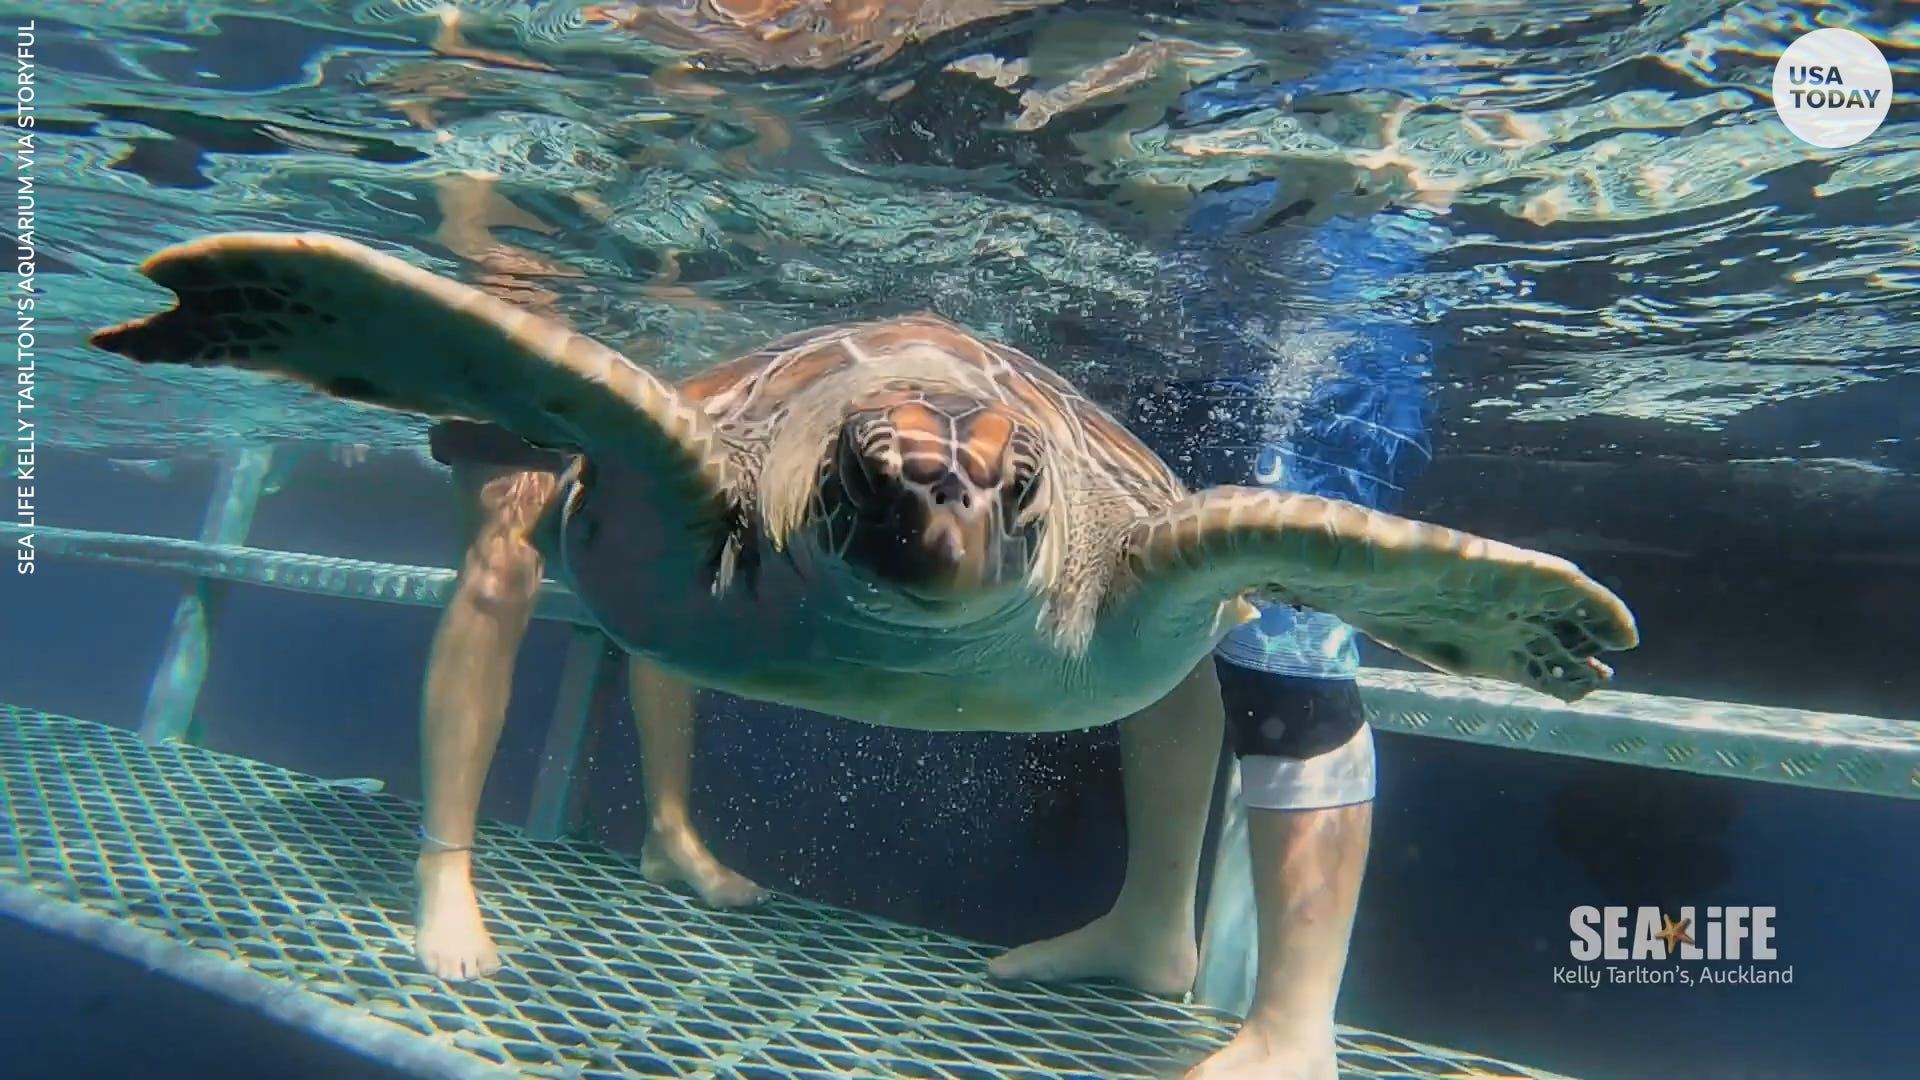 Watch these rescued sea turtles go back home to the ocean